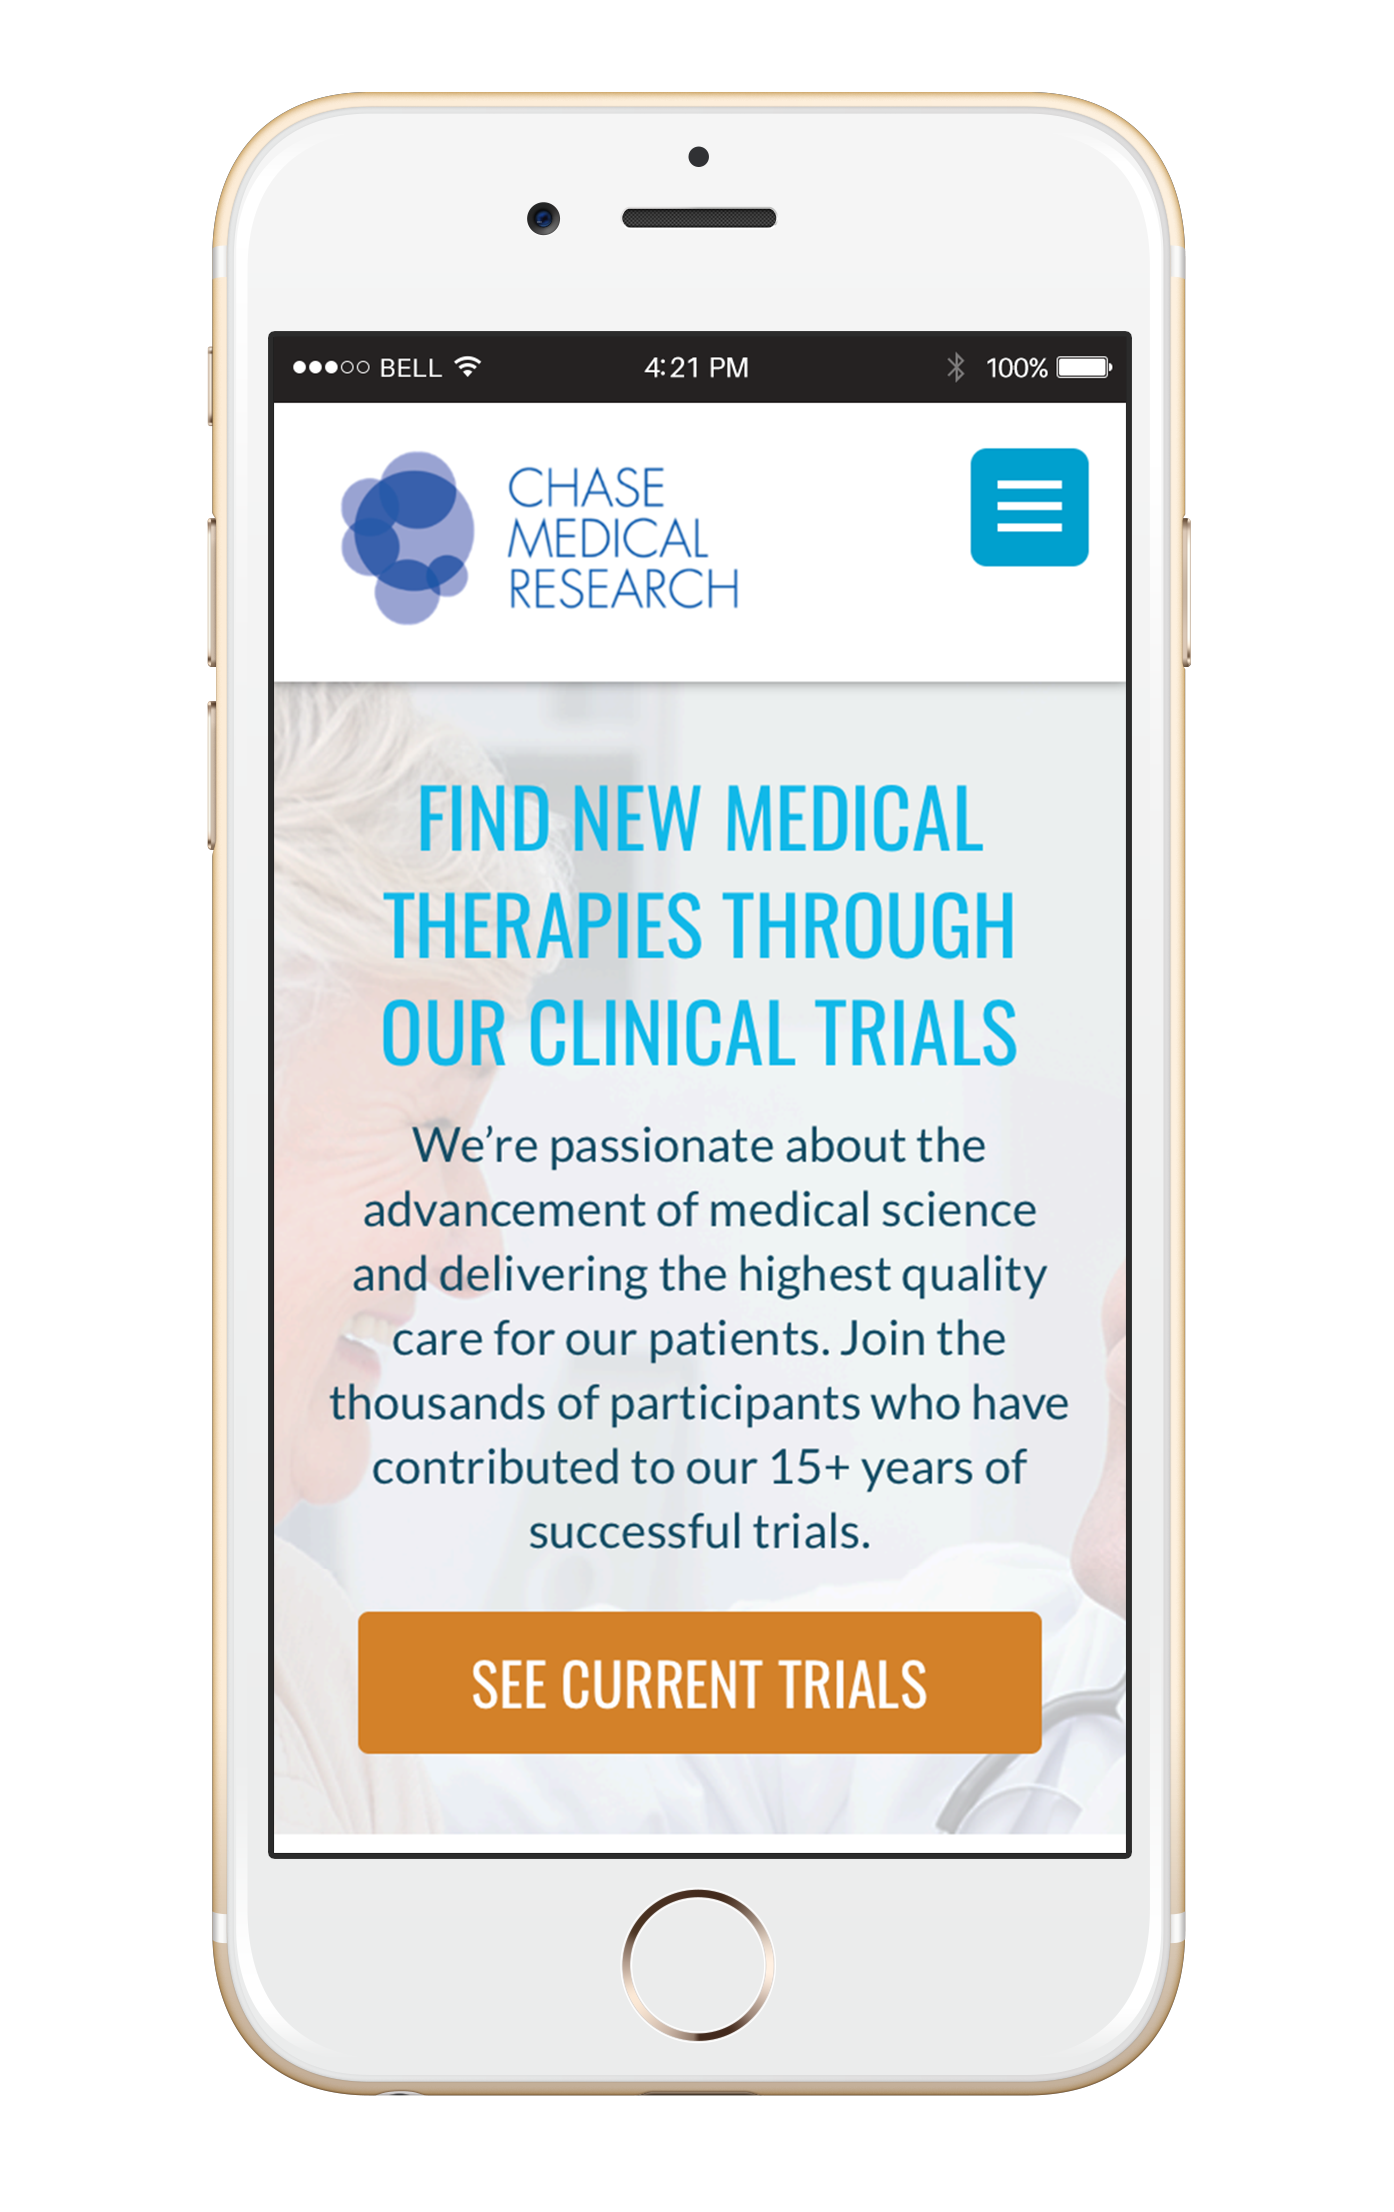 Chase Medical Research website as shown in mobile view on an iPhone